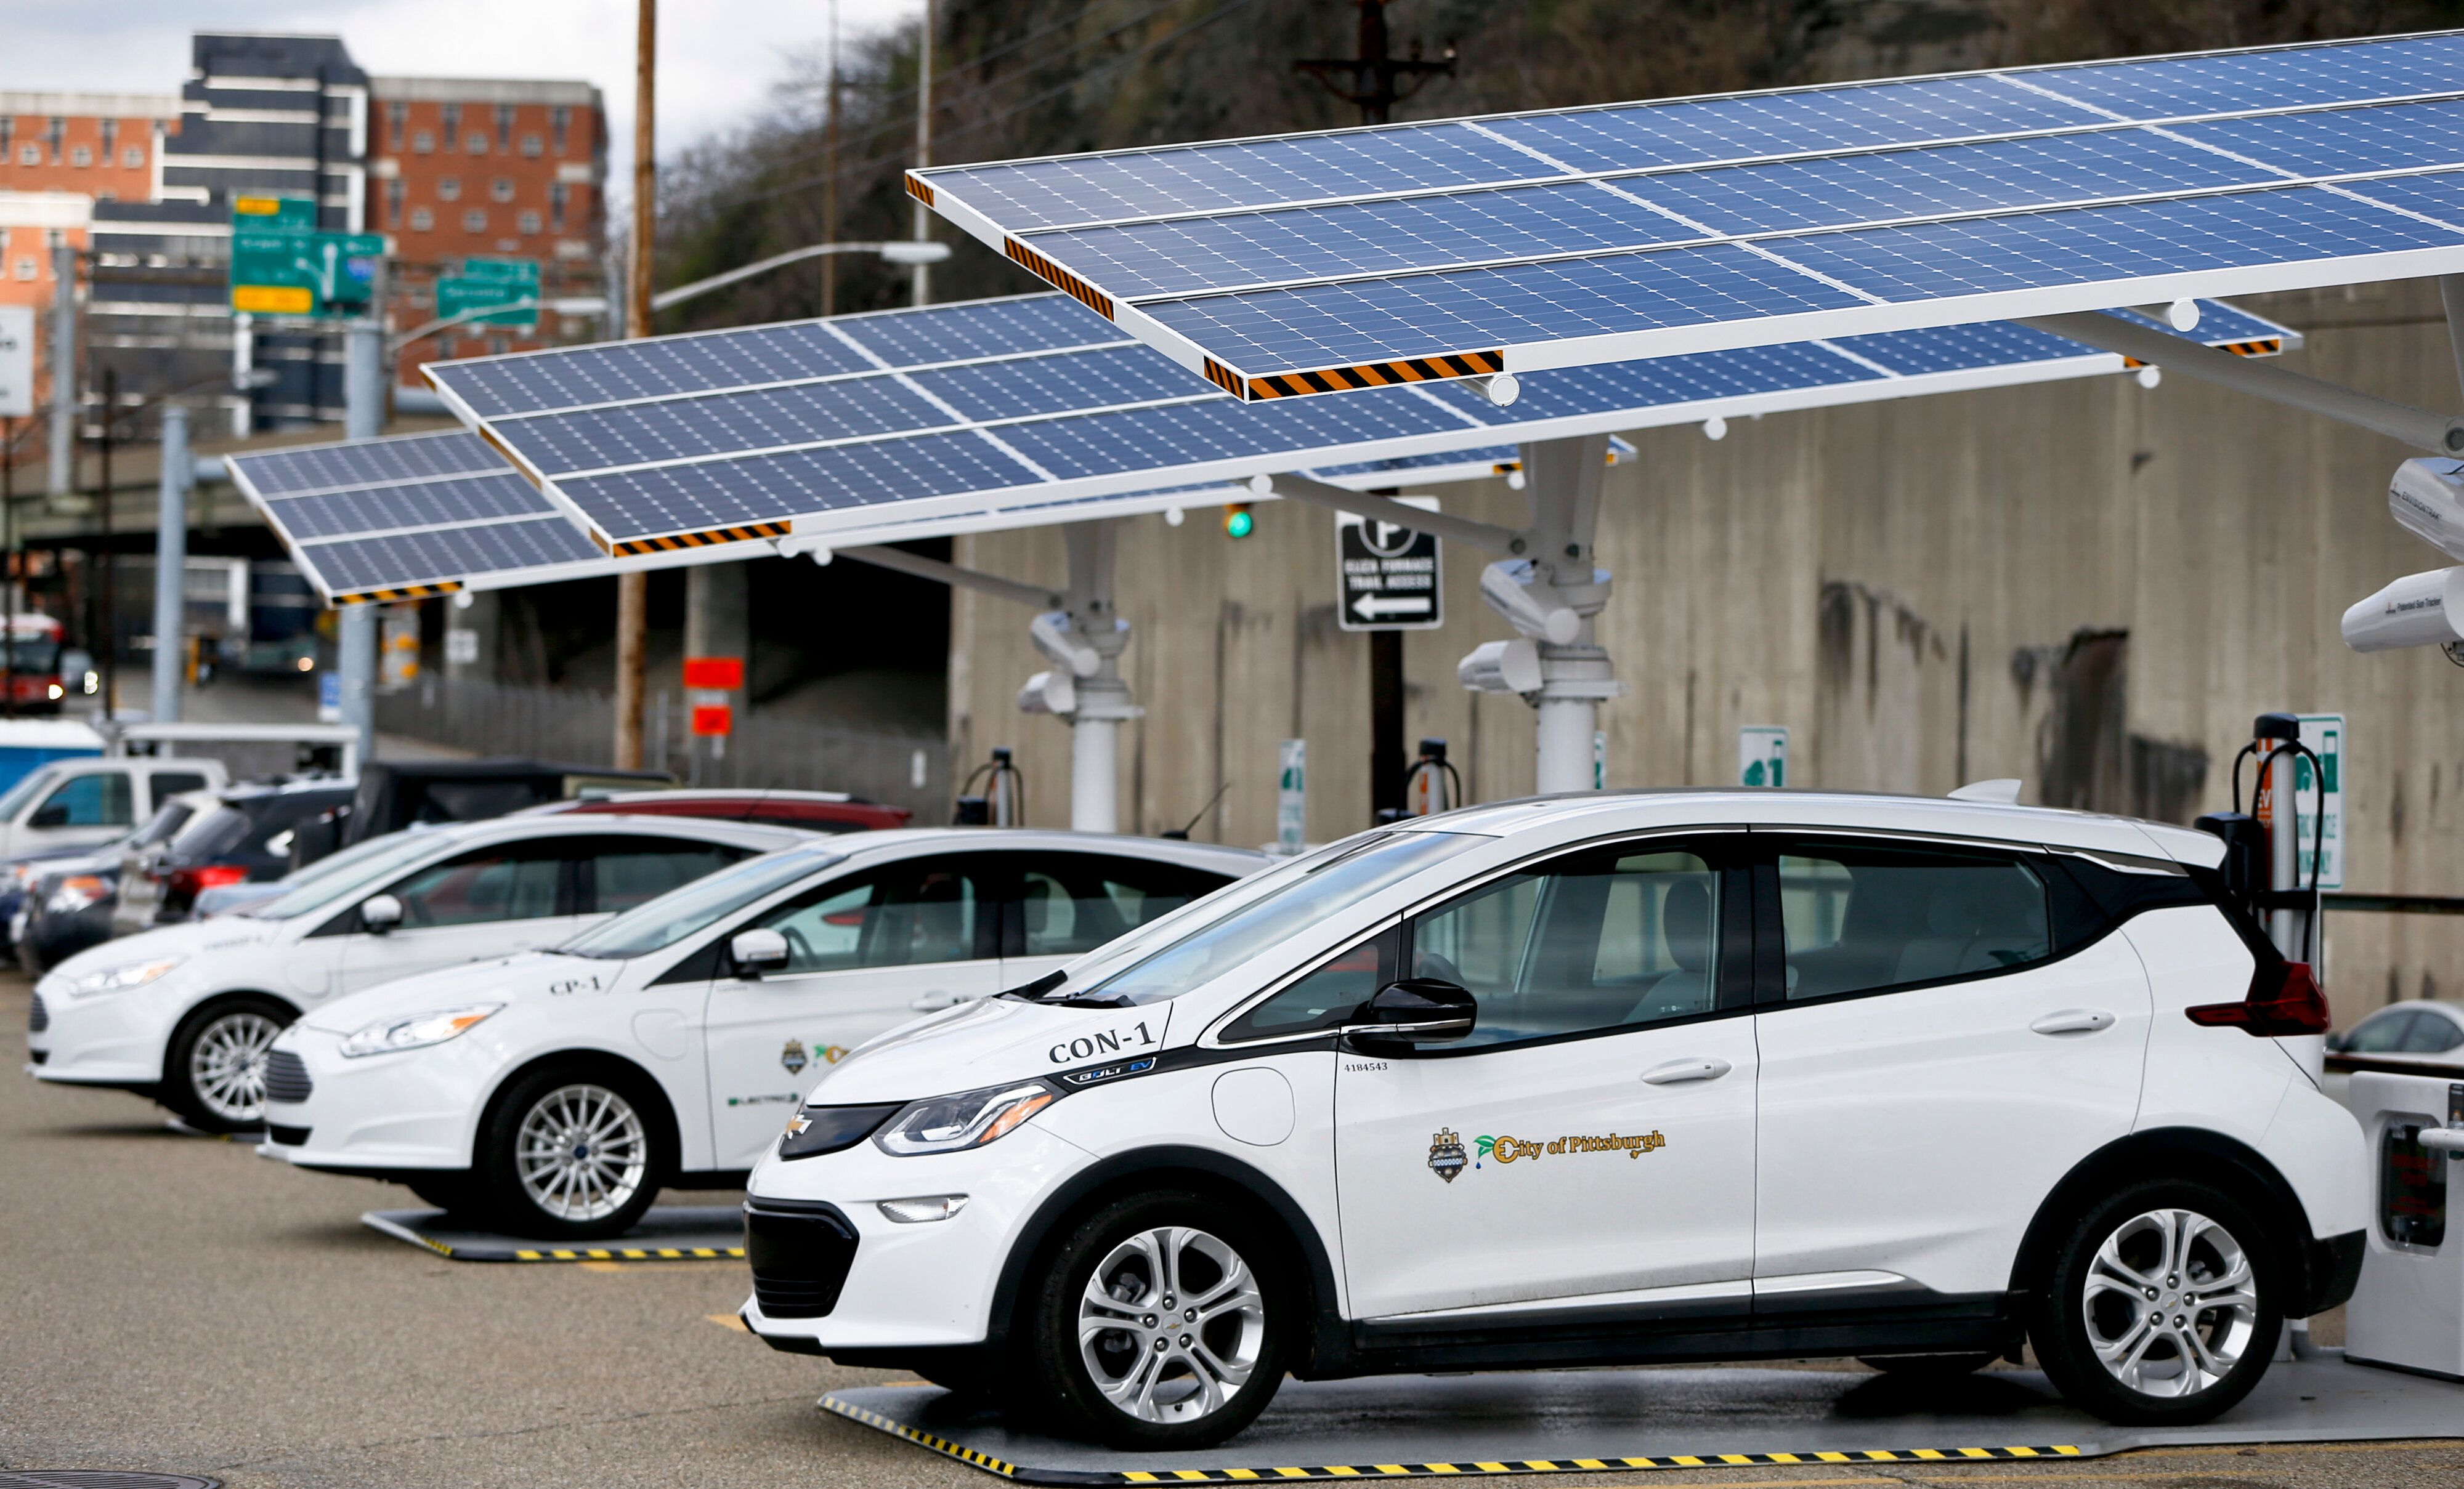 Some of the city of Pittsburgh's fleet of electrical vehicles are parked under solar charging panels before a news conference announcing the facility debut, Wednesday, April 18, 2018, in Pittsburgh. The press release from the city says that they currently have four electric vehicles and later this year they will receive six more cars that will be charged at these stations. According to the city, half of the $84,000 cost of each unit will be reimbursed through the State's Alternative Fuels Incentive Grant (AFIG). (AP Photo/Keith Srakocic)